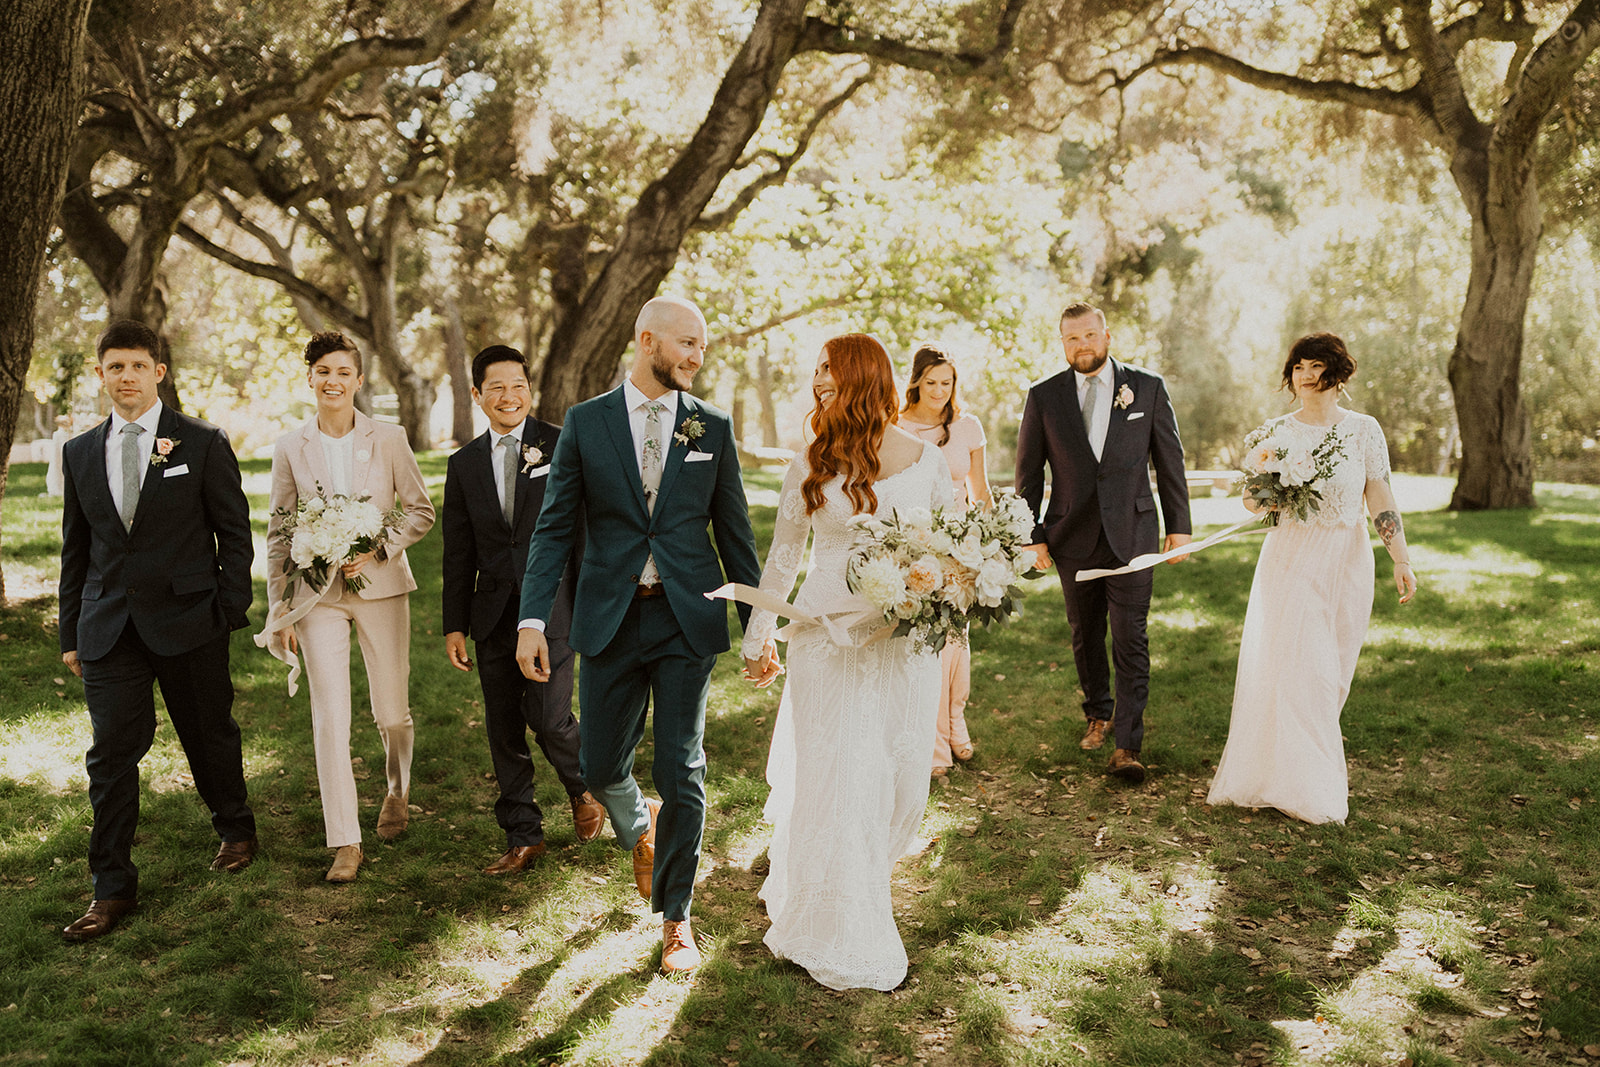 Carolyn_Travis_Wedding_IndiaEarl_BigSur_177.jpg